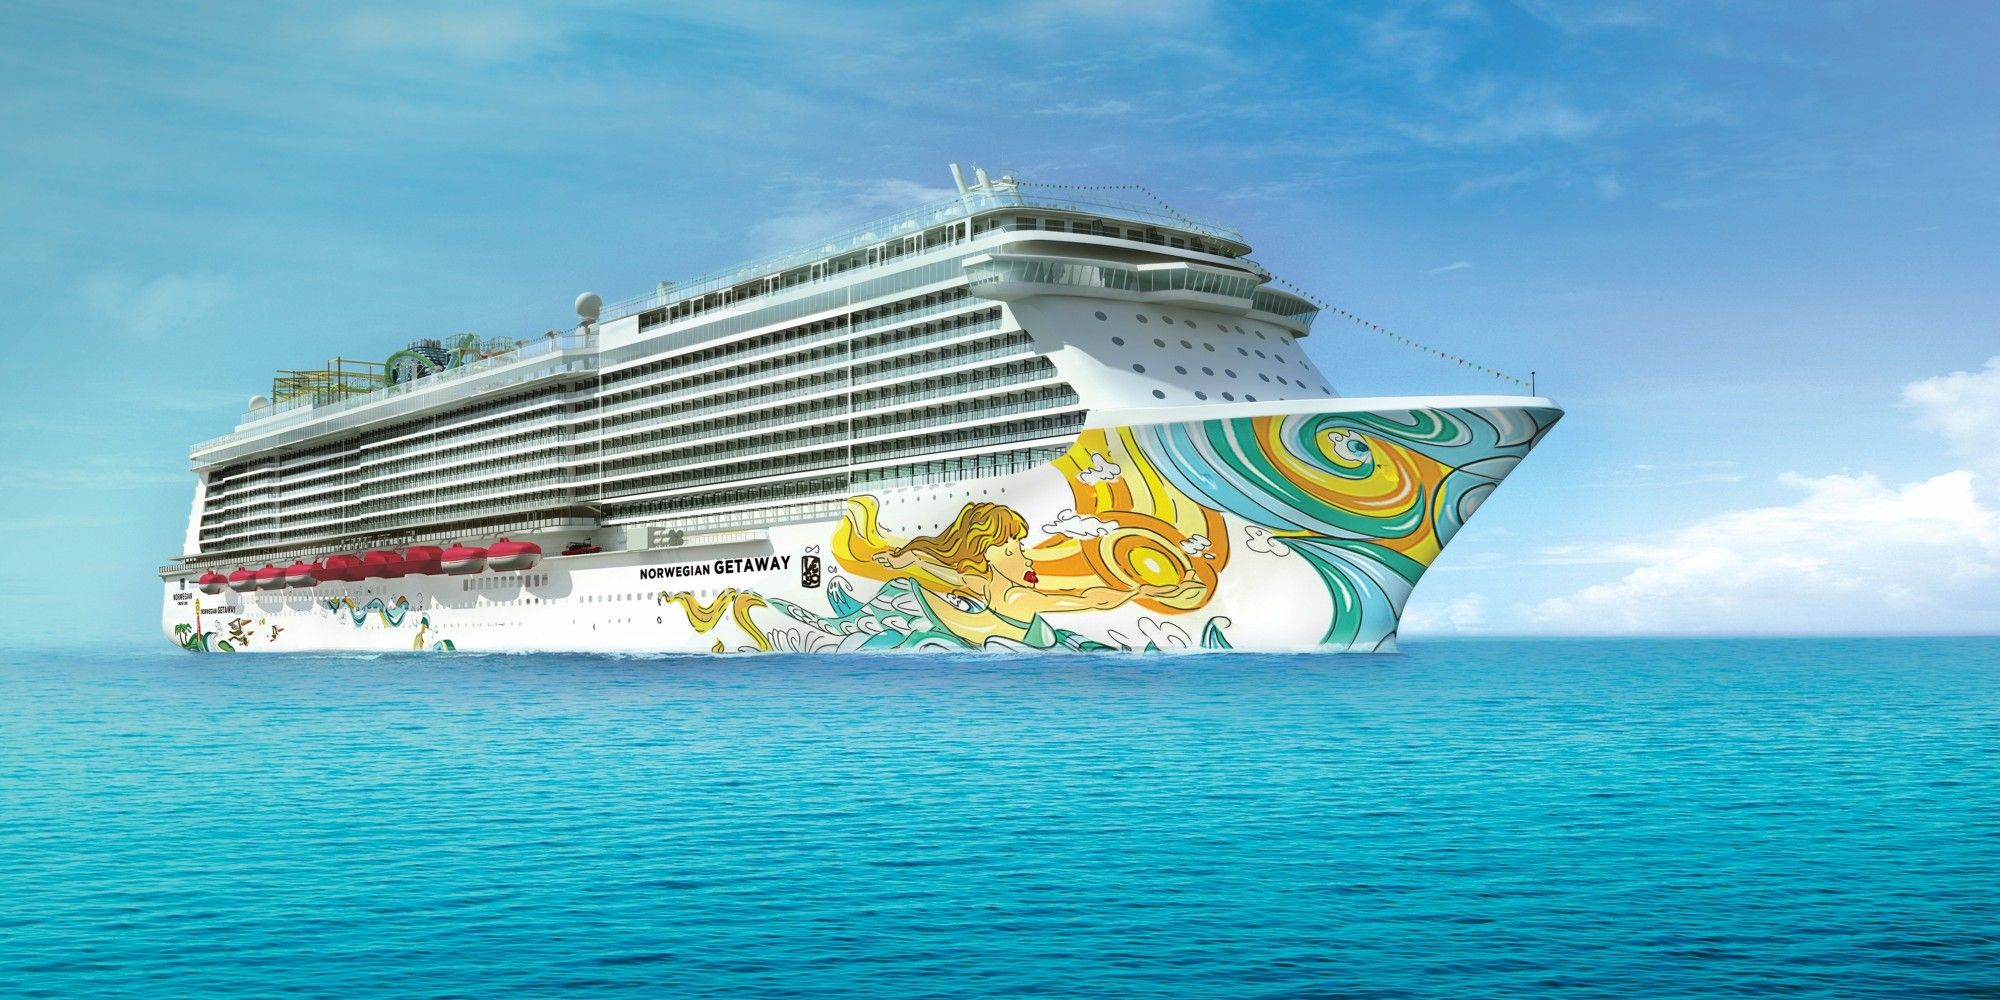 The Beautiful Cruise Ship In Sea Book Now Journeycook